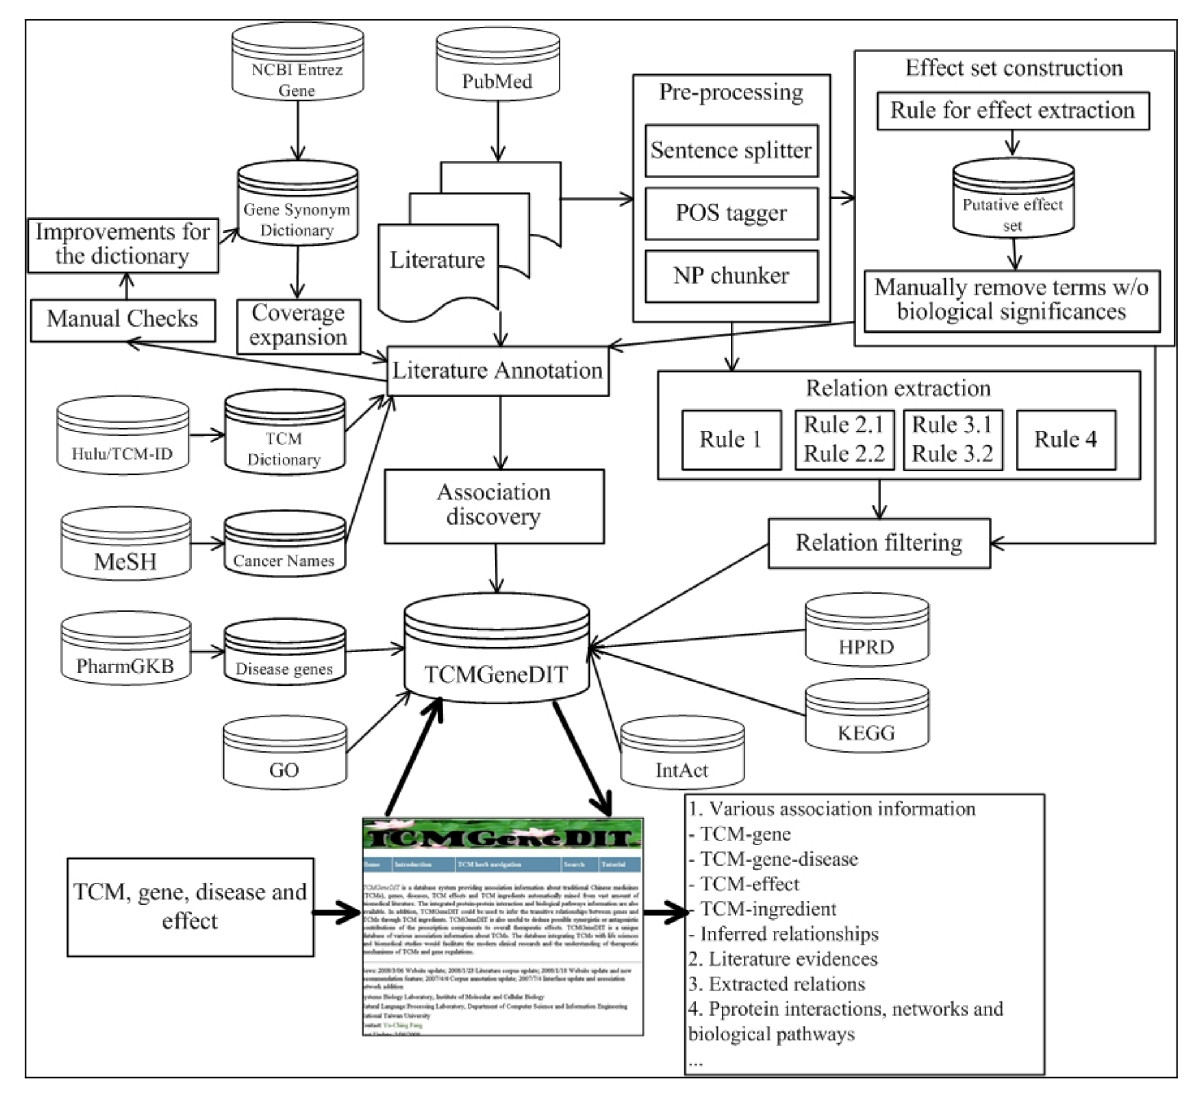 http://static-content.springer.com/image/art%3A10.1186%2F1472-6882-8-58/MediaObjects/12906_2008_Article_217_Fig2_HTML.jpg